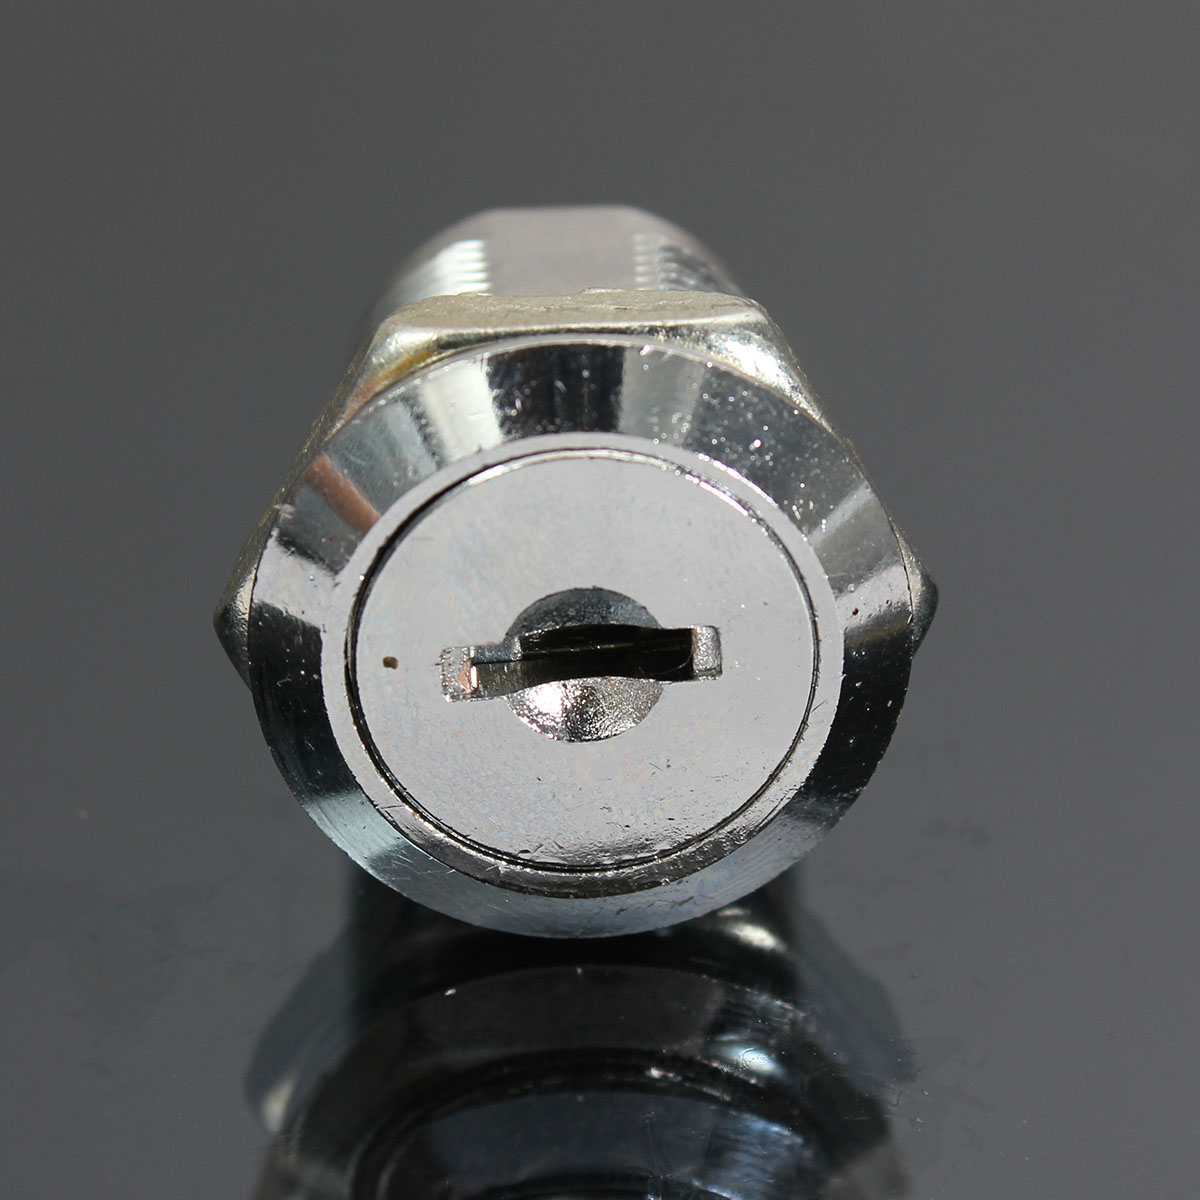 20/25/30mm Cam Lock For Cabinet Toolbox Drawer Enclosure Cupboard Locker with 2 Keys